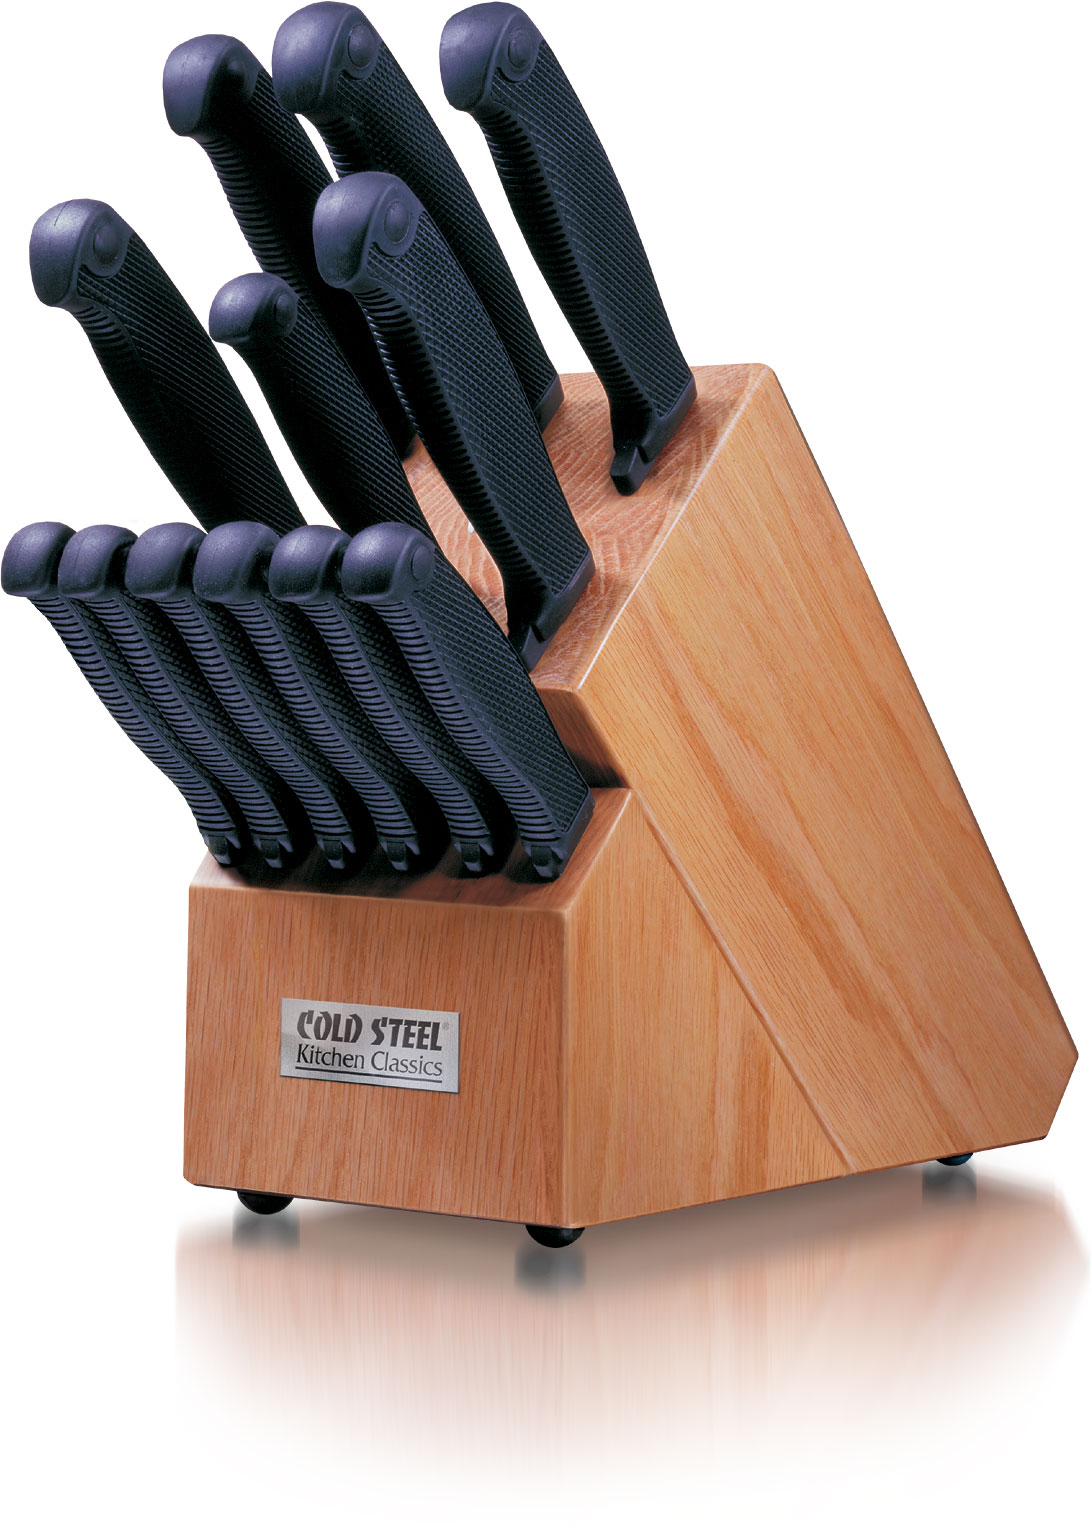 Cold Steel Kitchen Classics  Piece Full Knife Set